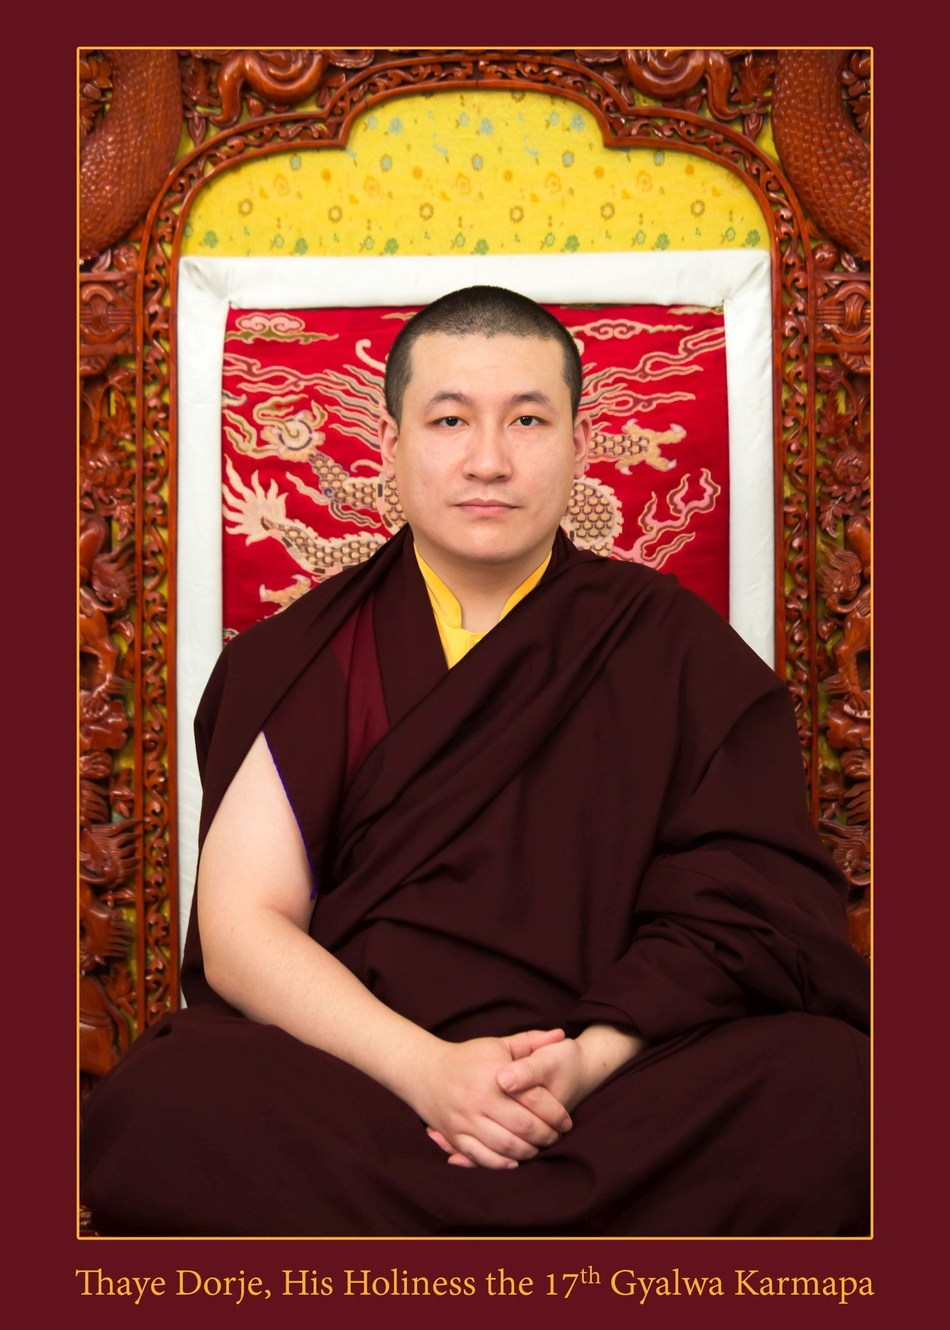 Both the 15th and 17th Karmapas have now married (PRNewsFoto/Private Office of 17th Karmapa)